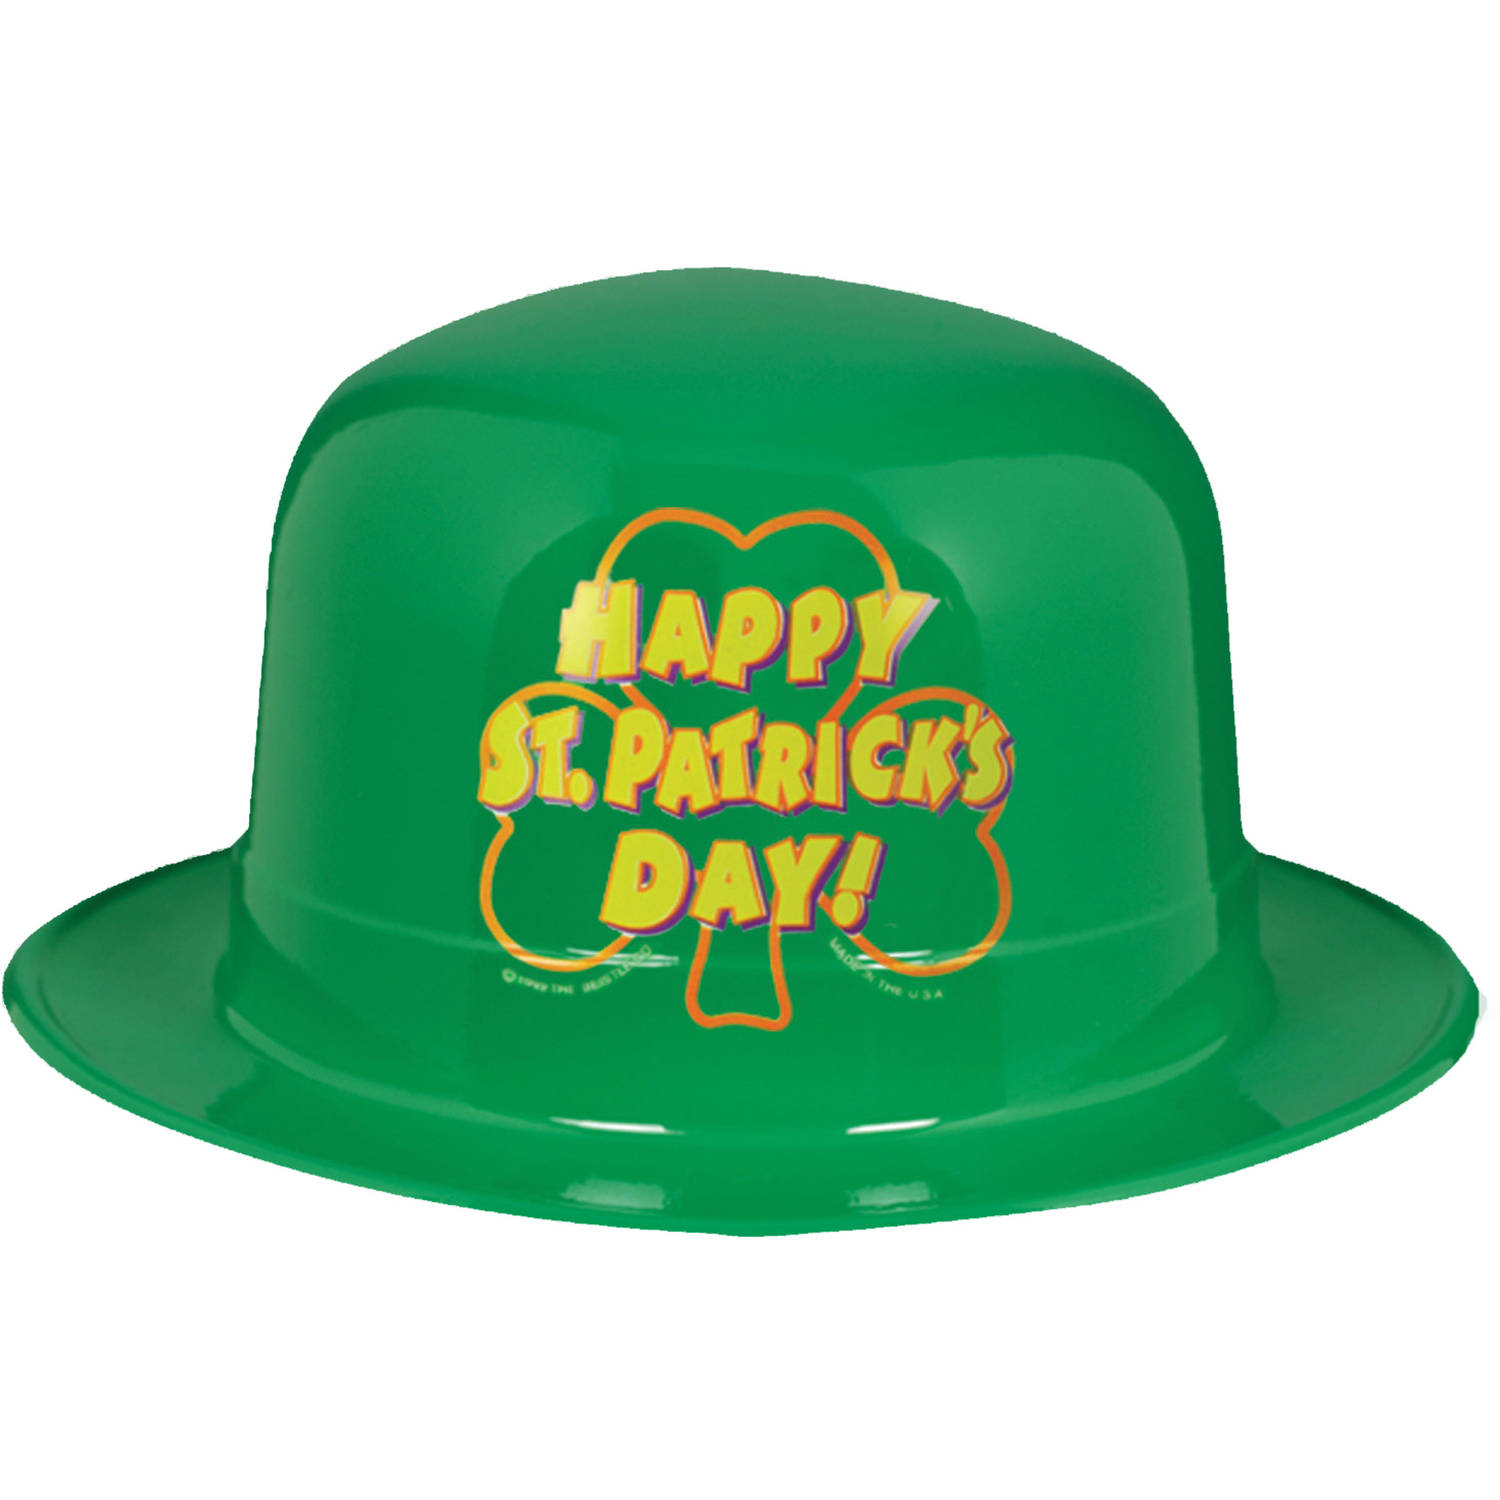 5-Pack Plastic St. Patrick's Day Hats Adult Halloween Accessory